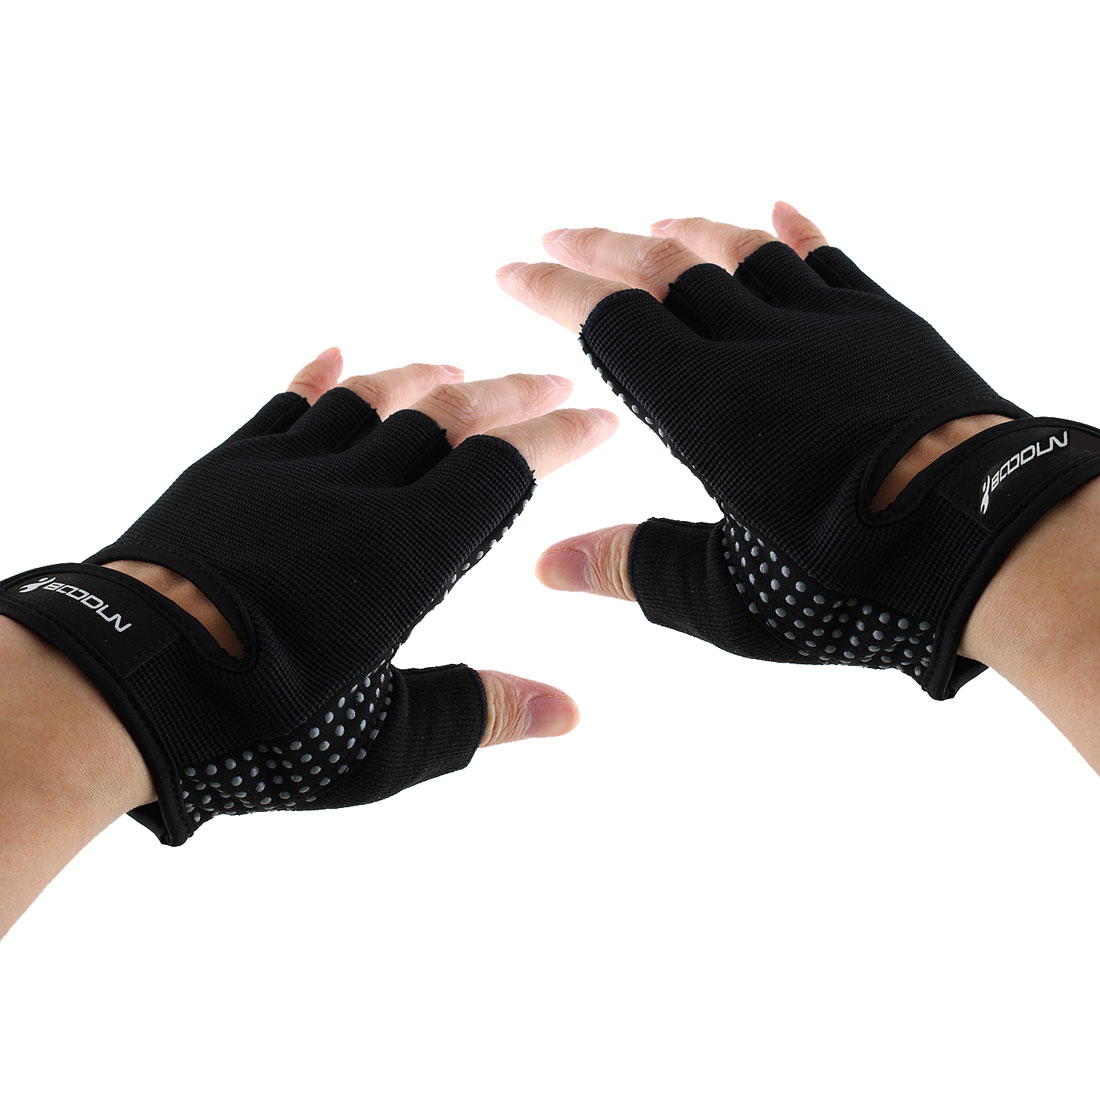 BOODUN Authorized Adult Unisex Spandex Adjustable Sports Training Workout Mittens Fitness Gloves Black M Pair